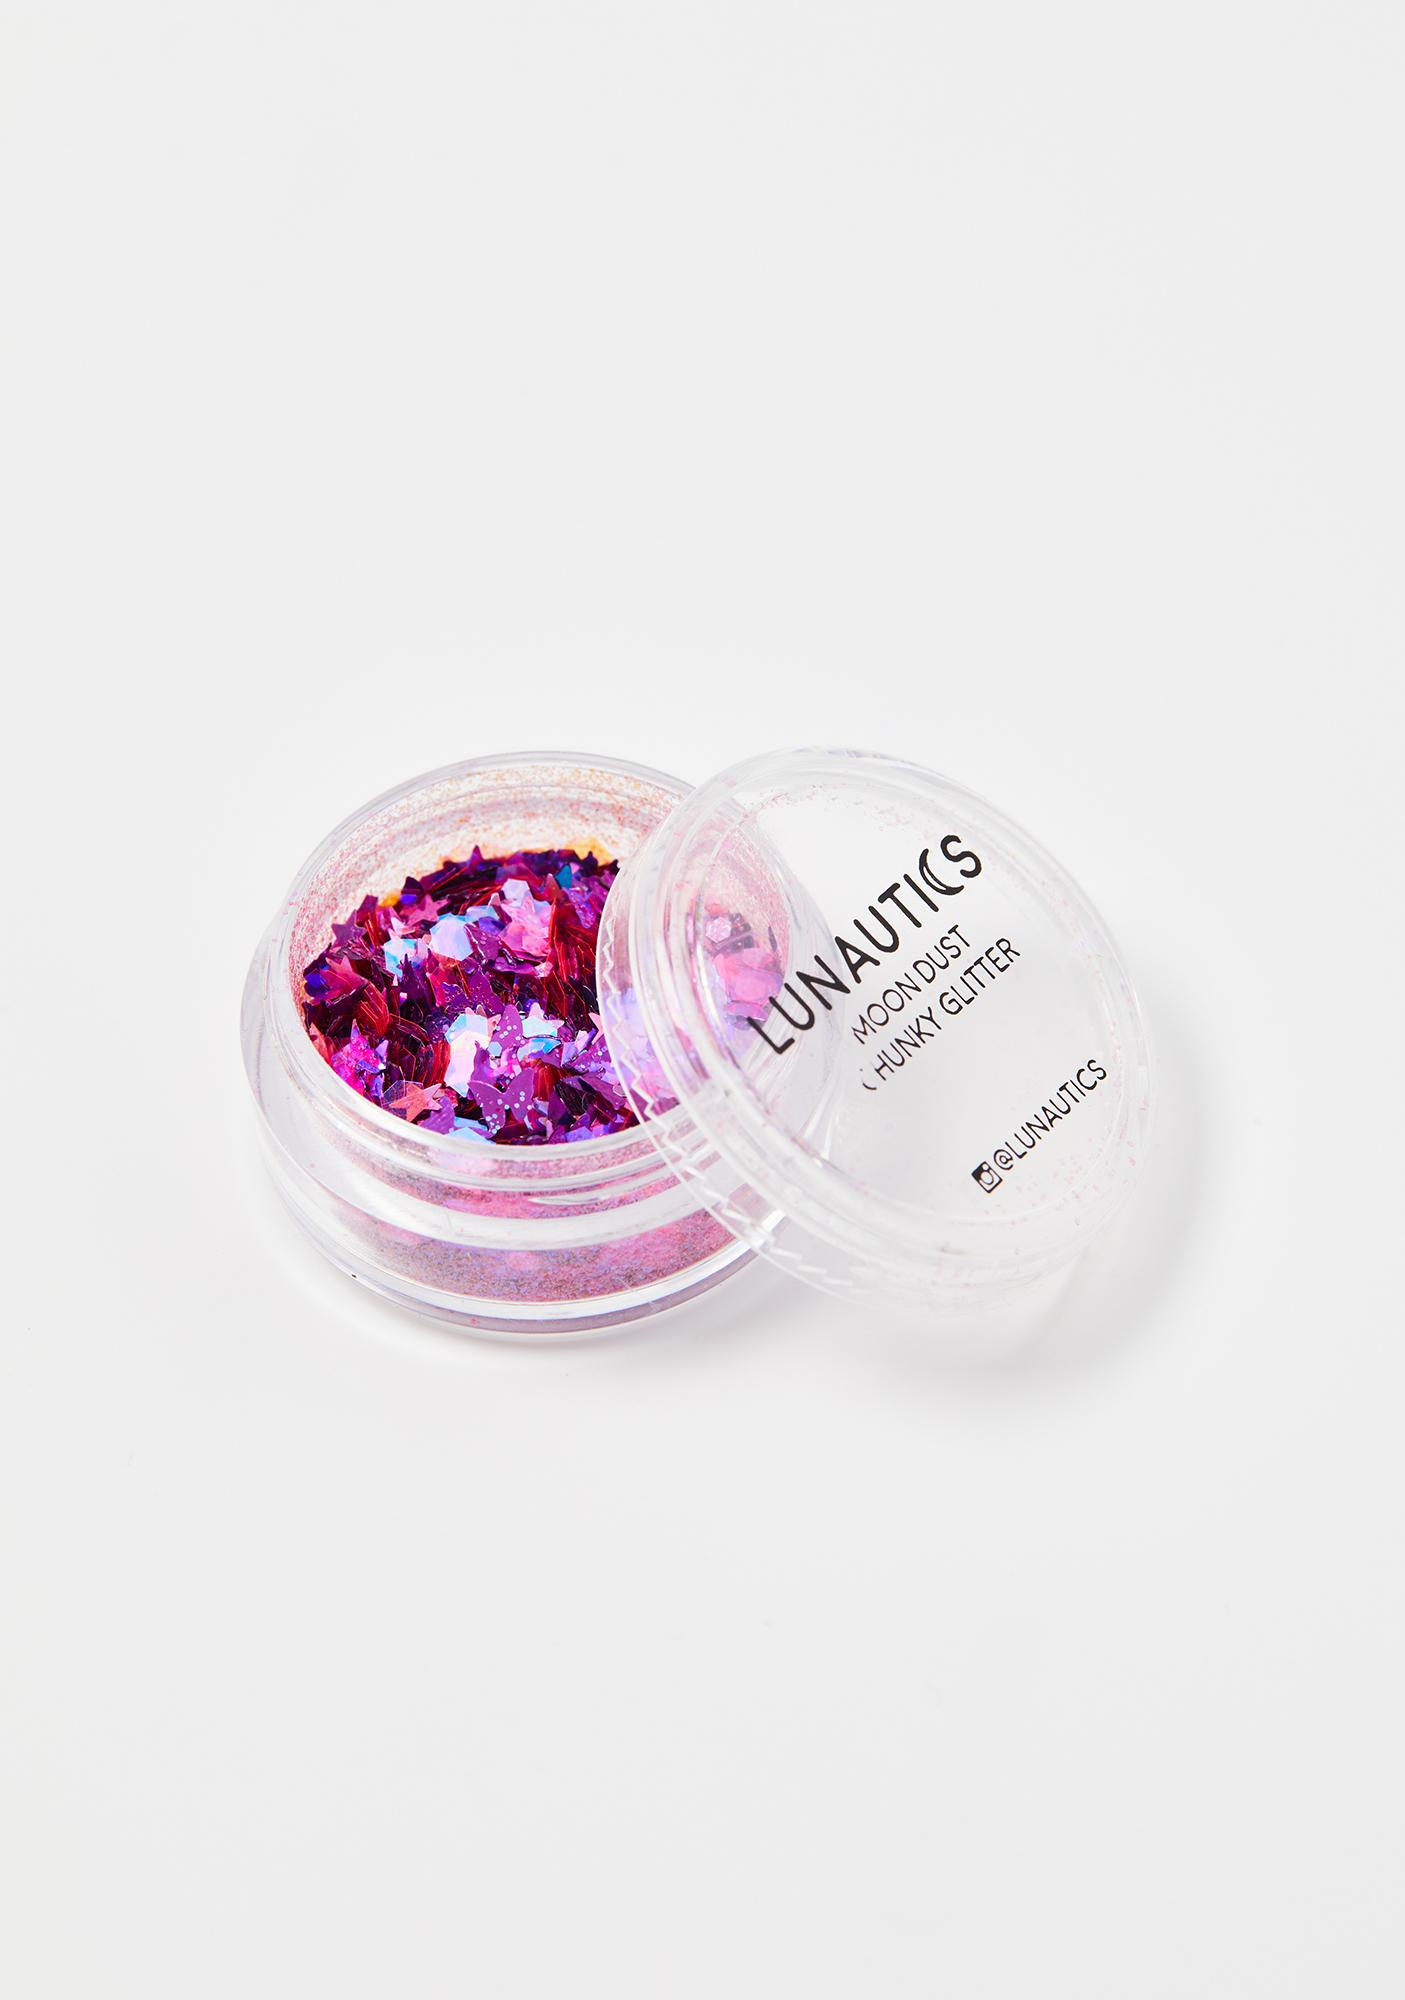 Lunautics Lunita Moon Dust Glitter